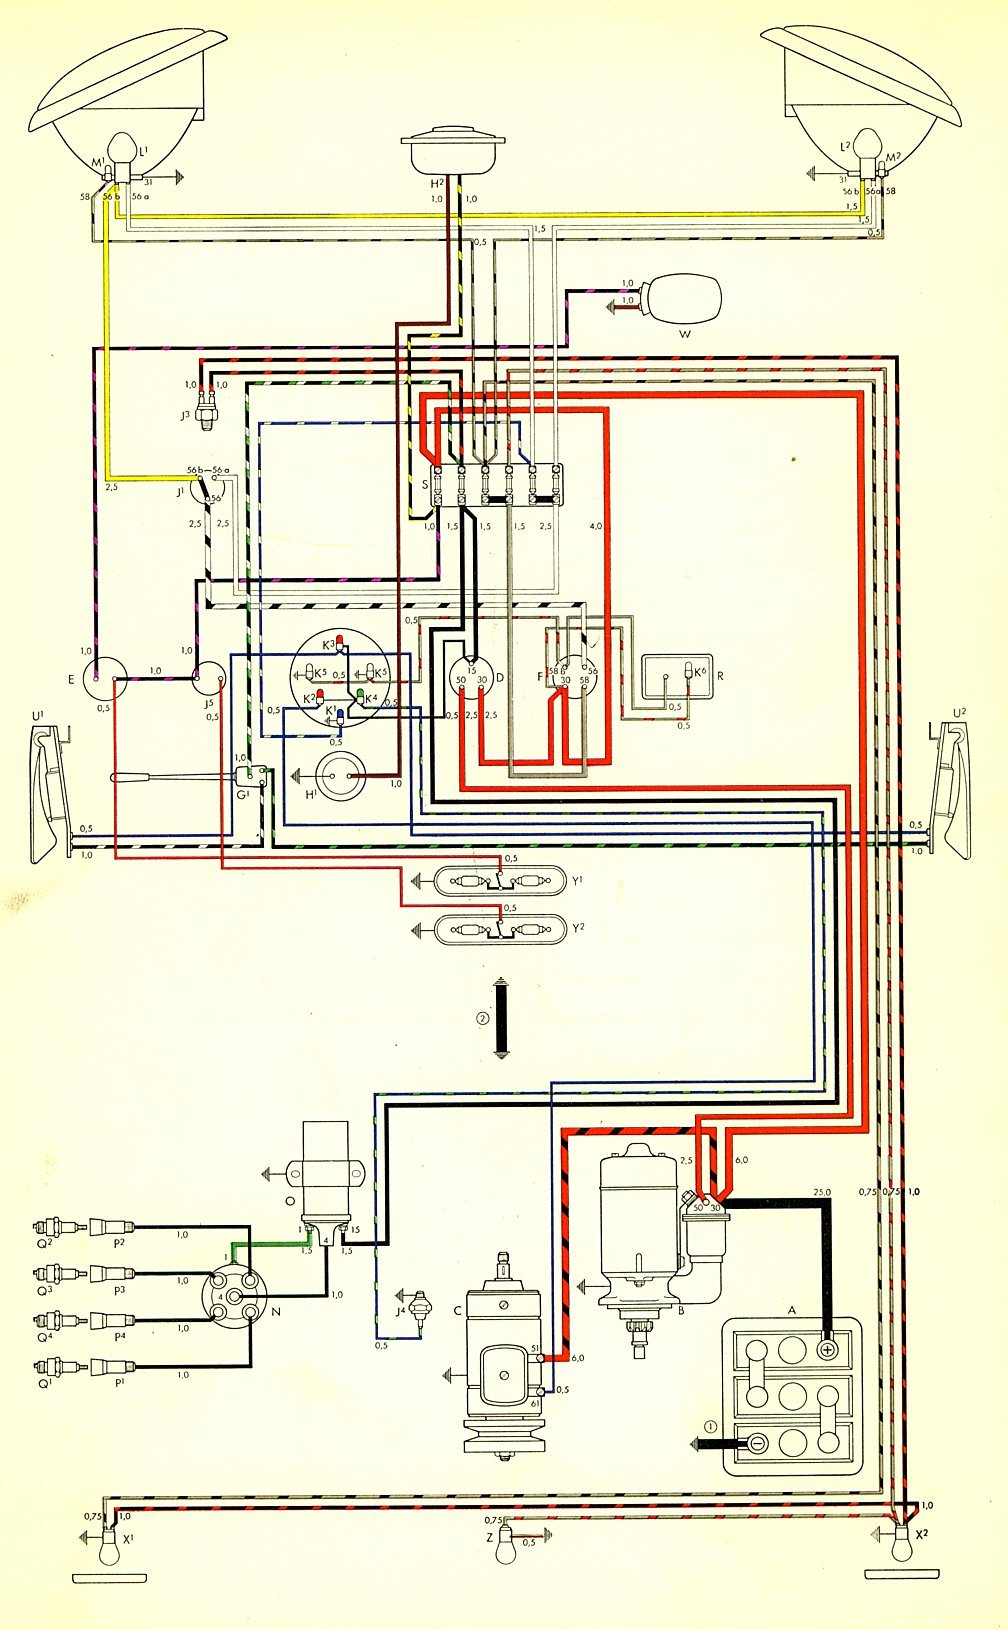 bus_59 wiring diagram for 1971 vw bus readingrat net 1978 vw bus fuse box diagram at creativeand.co